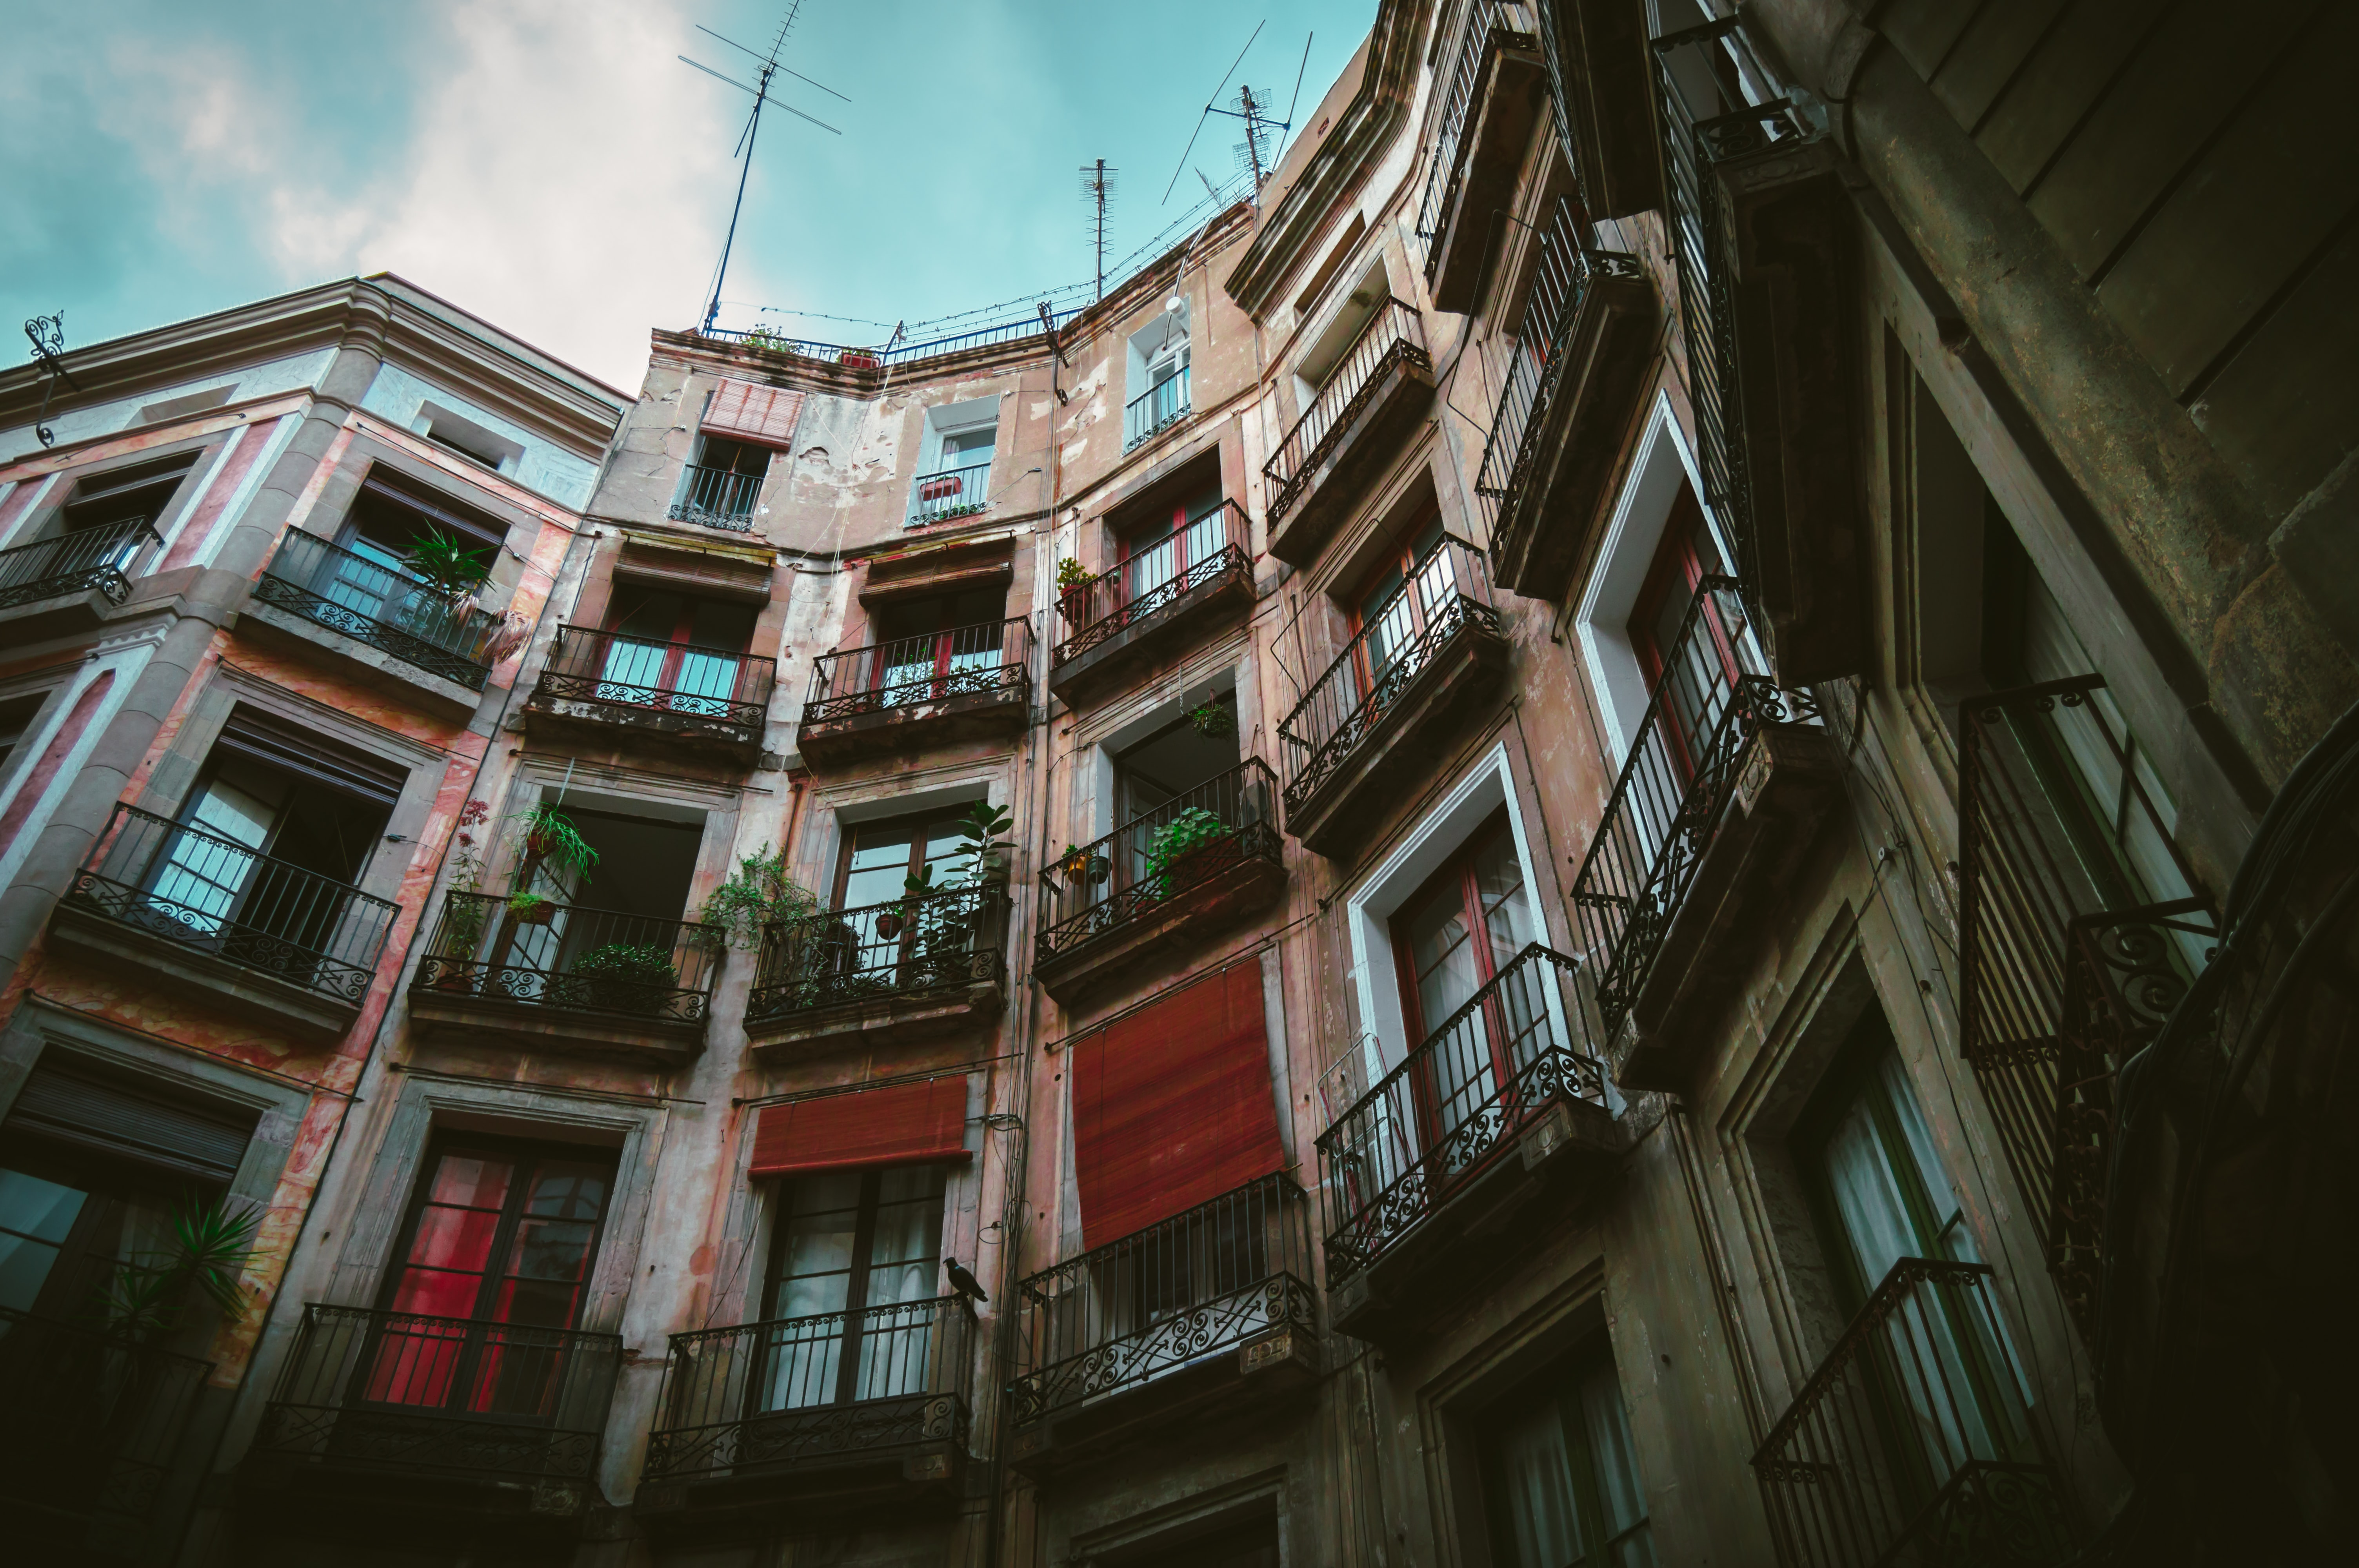 multicolored apartment building in low angle photography